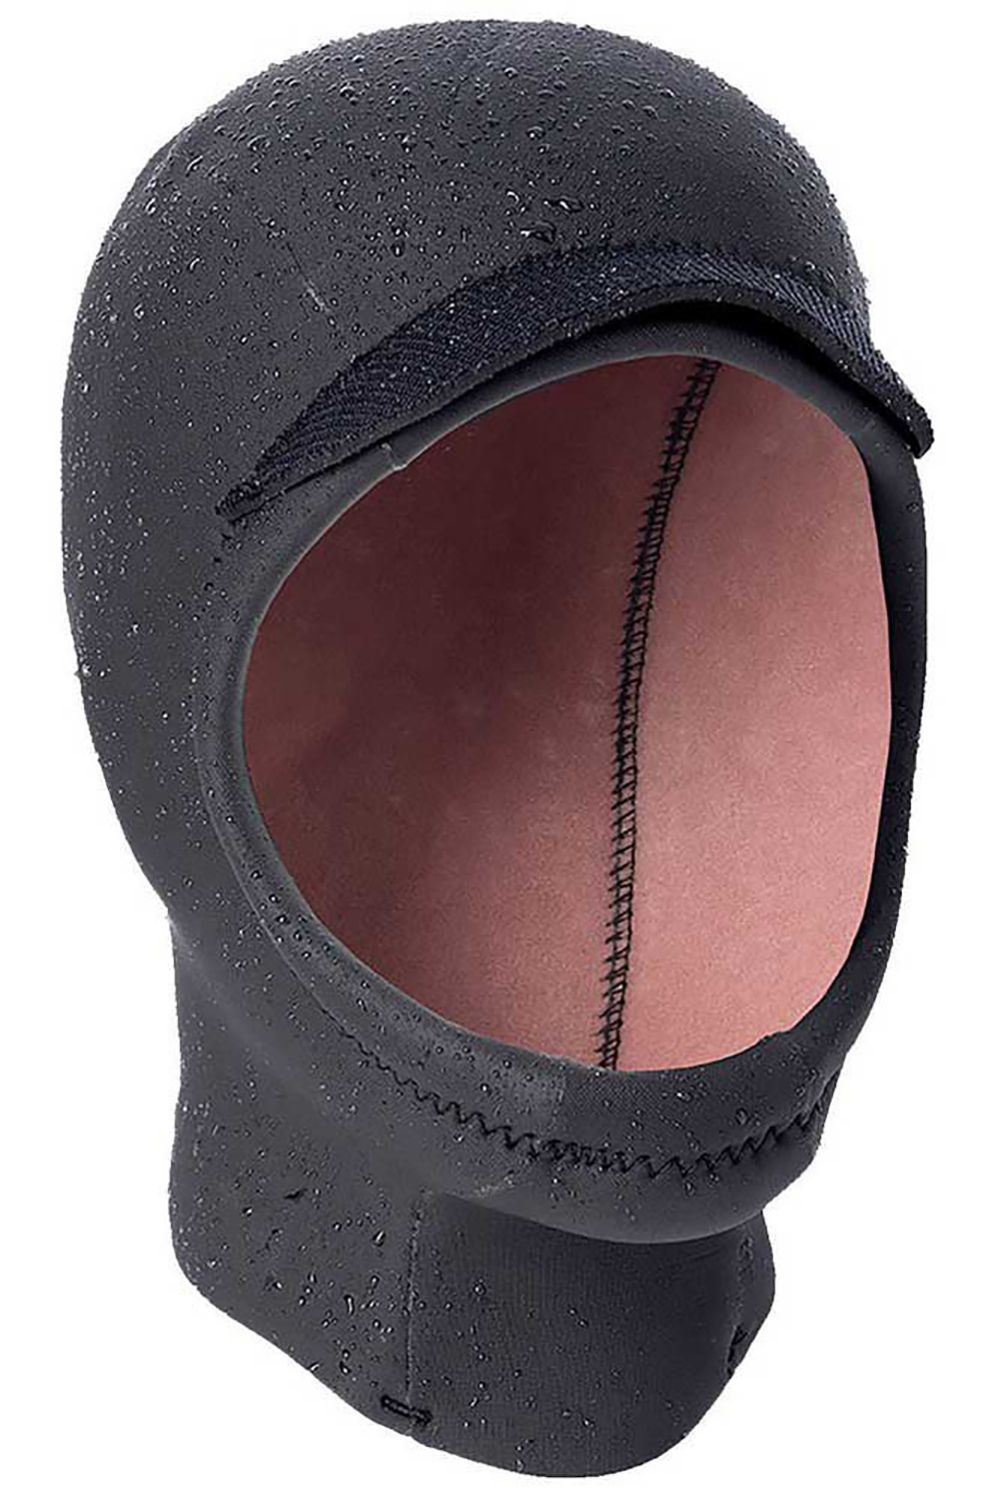 Gorro Neoprene Rip Curl HEAT SEEKER 3MM OPEN FACE HOOD CHIN CUP Black